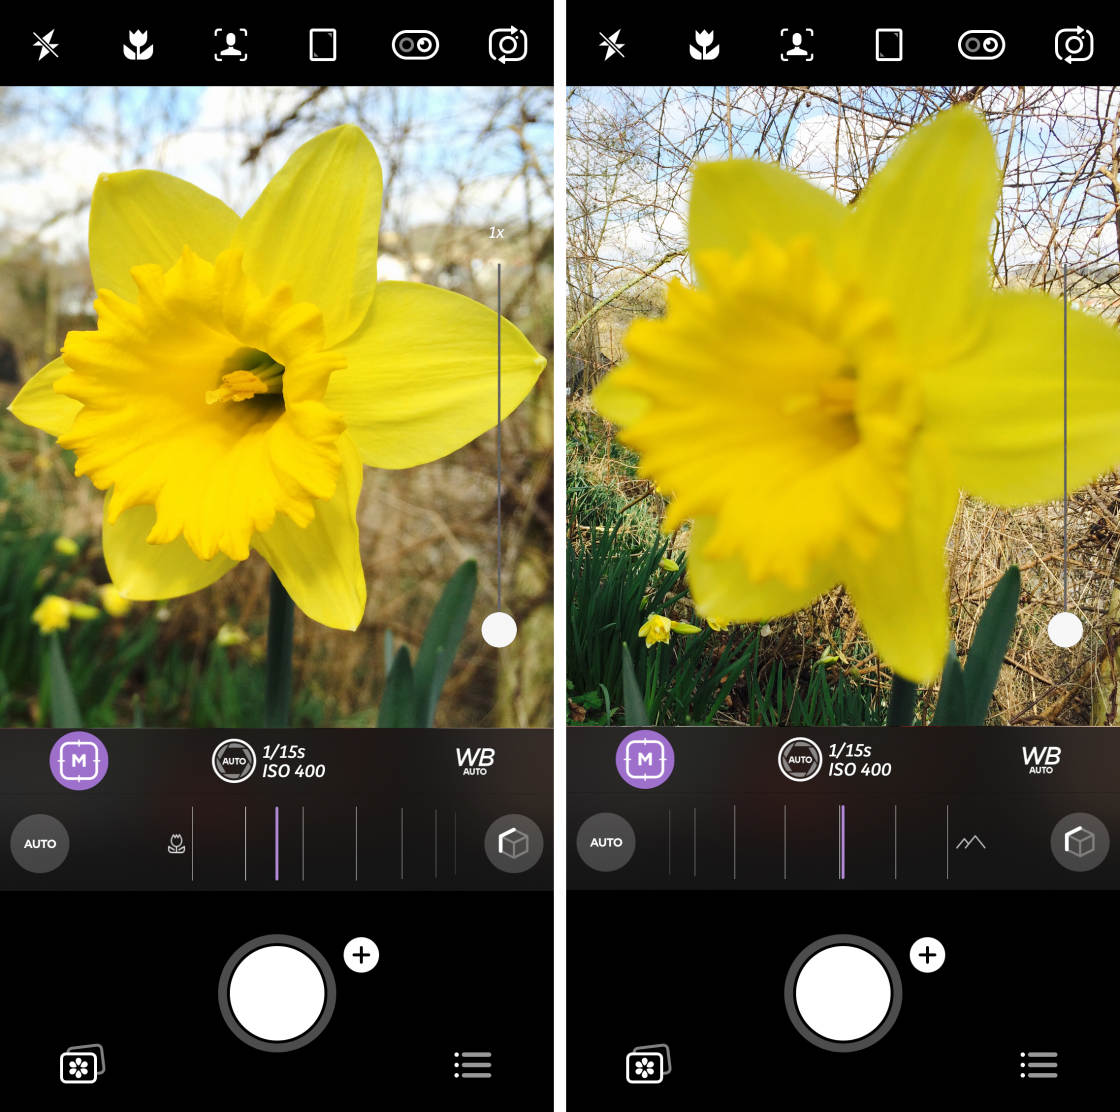 iPhone Camera Controls no script